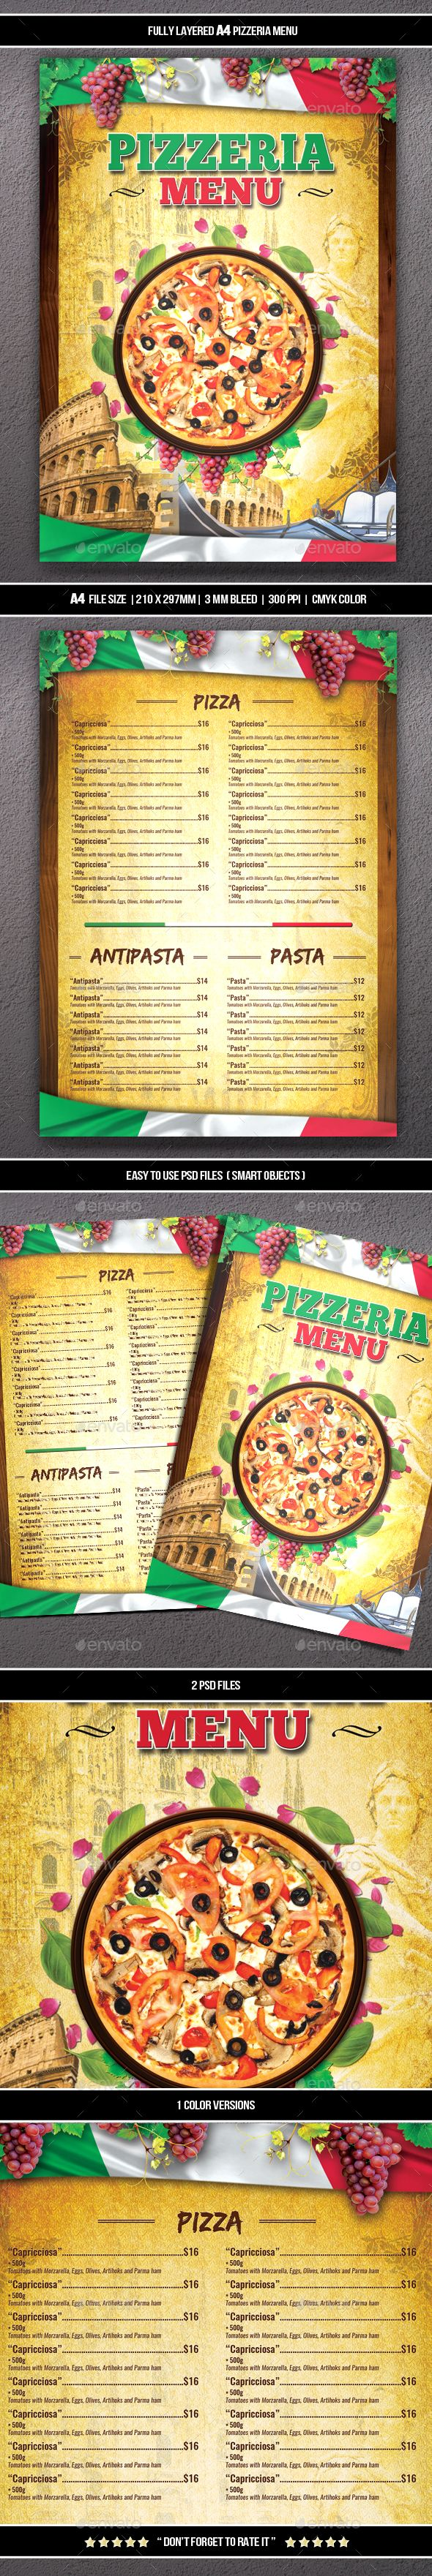 Pizzeria Menu 2 (A4) - Food Menus Print Templates | DOWNLOAD : https://graphicriver.net/item/pizzeria-menu-2-a4/20858932?ref=sinzo